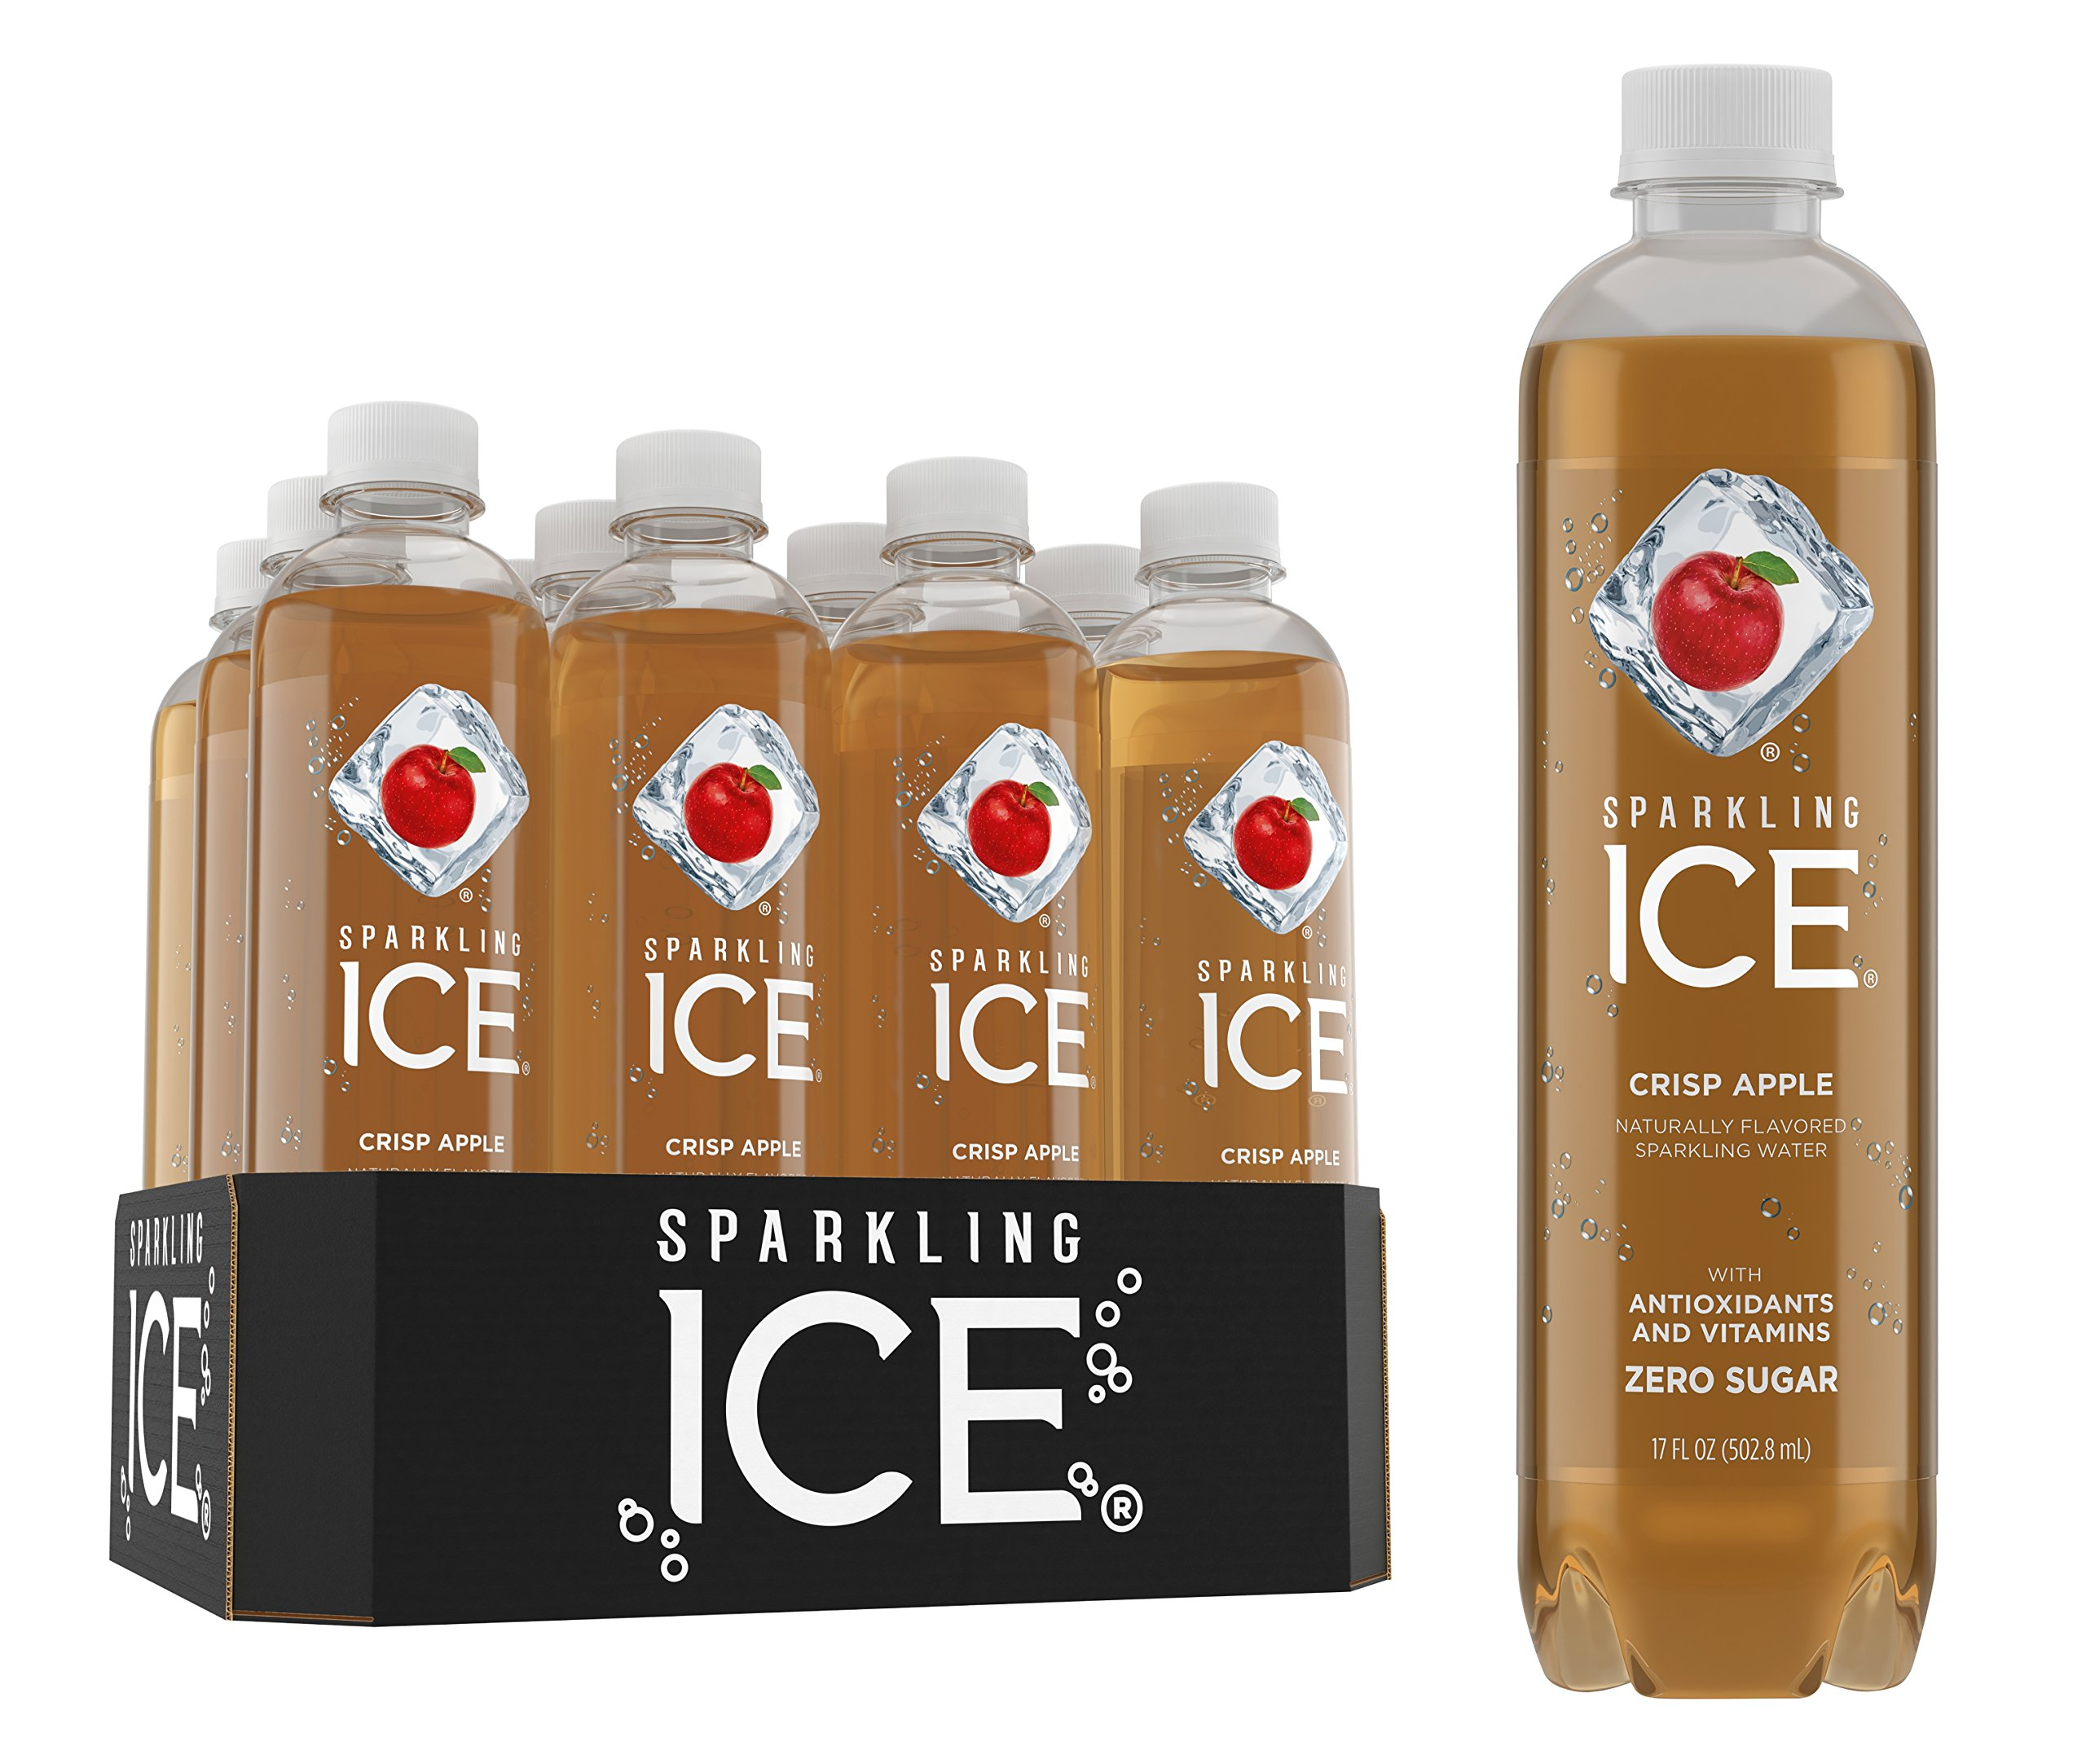 Sparkling Ice, Crisp Apple Sparkling Water, with antioxidants and vitamins, Zero Sugar, 17 FL OZ Bottles (Pack of 12) by Sparkling ICE